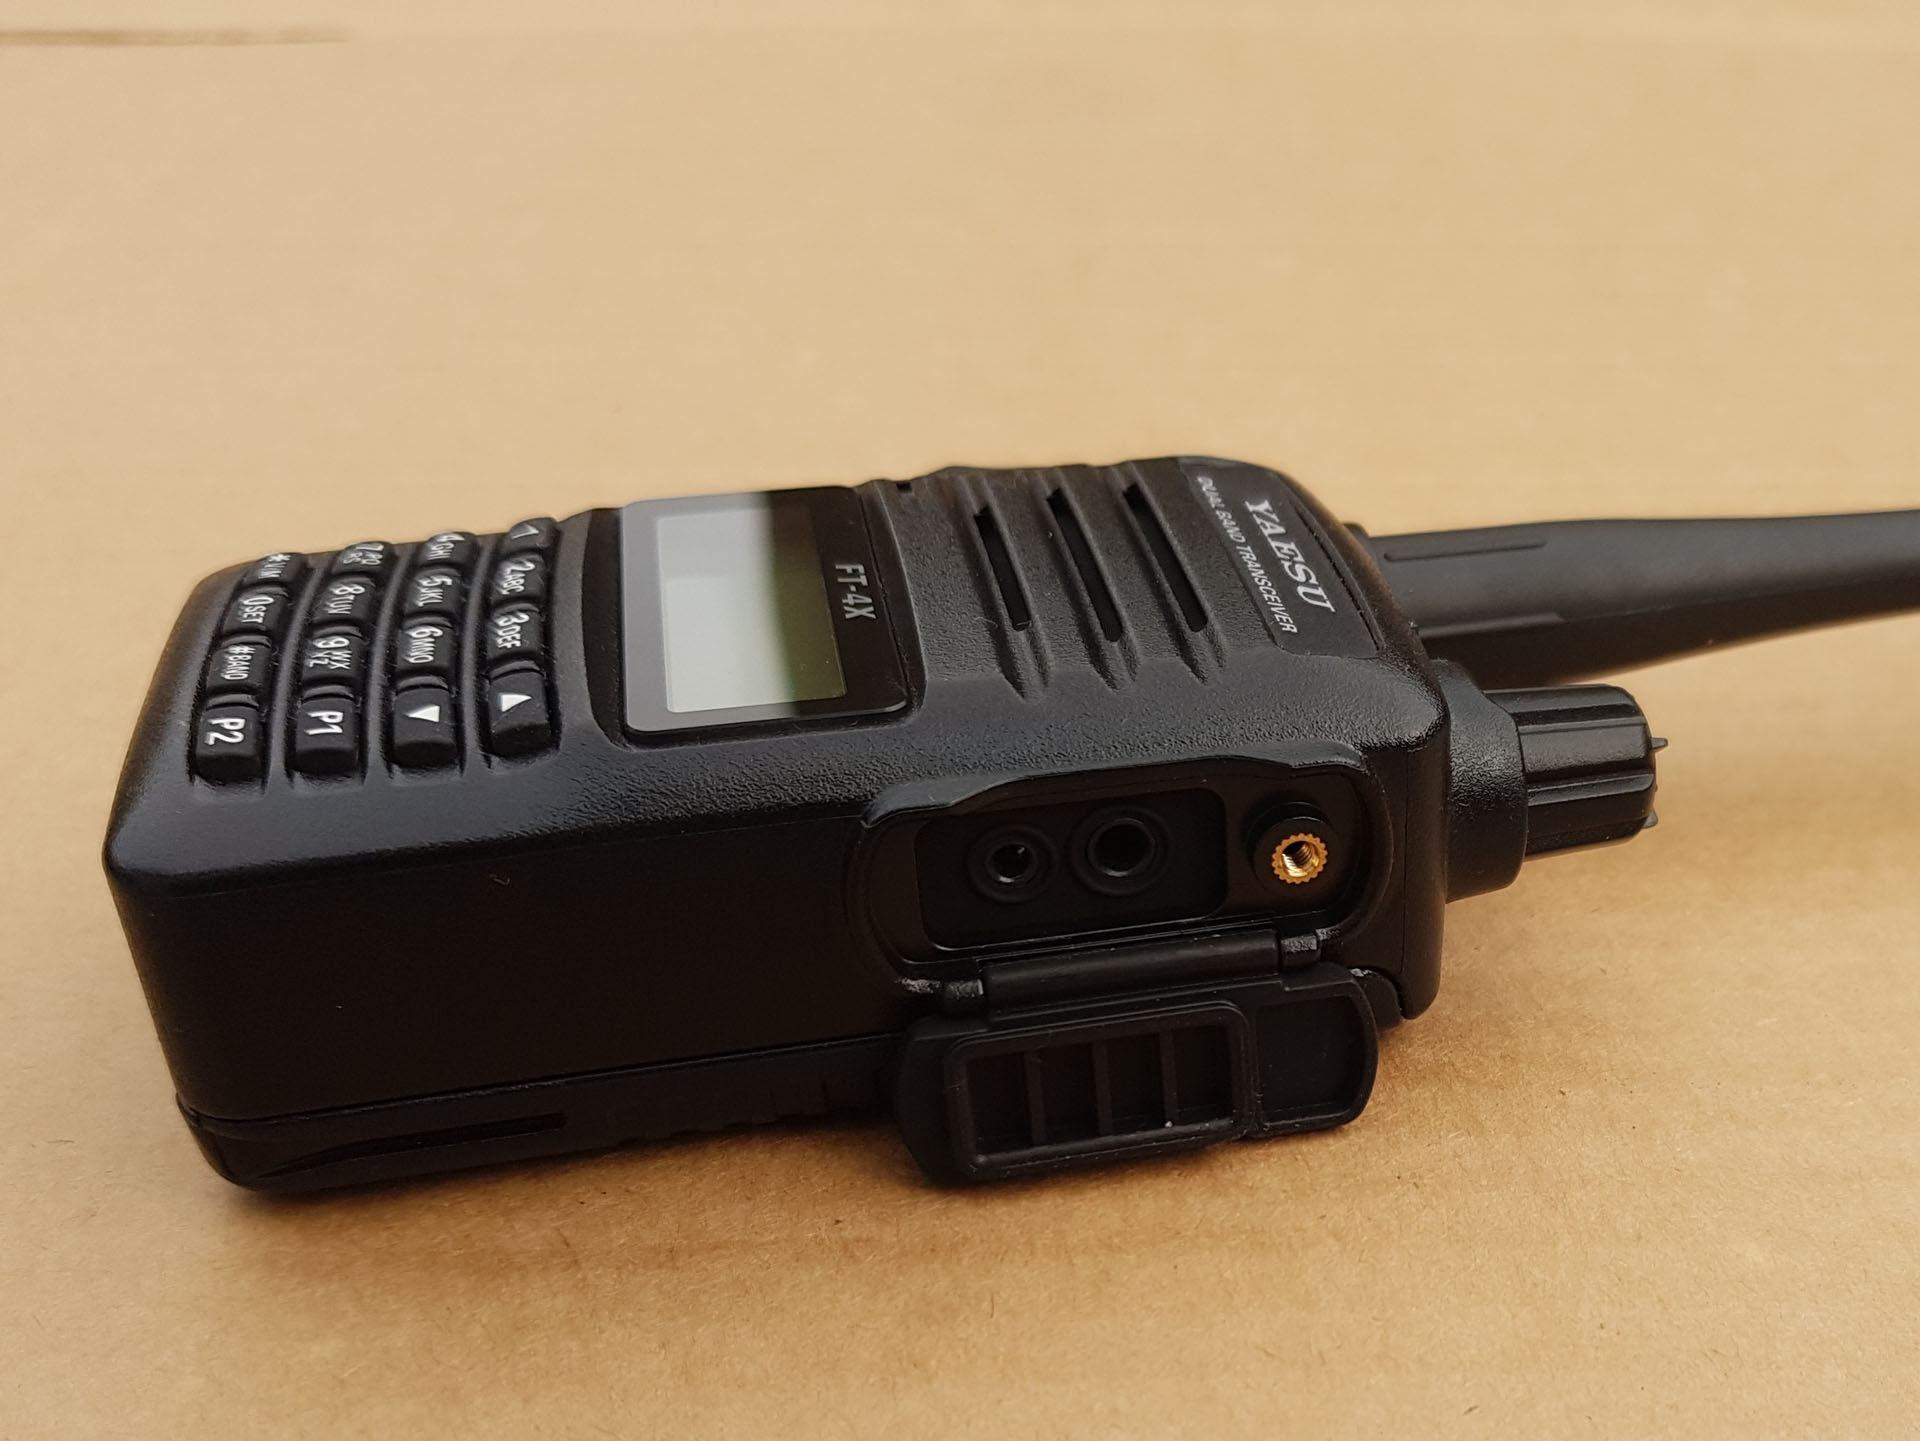 Yaesu FT-4X review (it is after all a Baofeng) | QRPblog